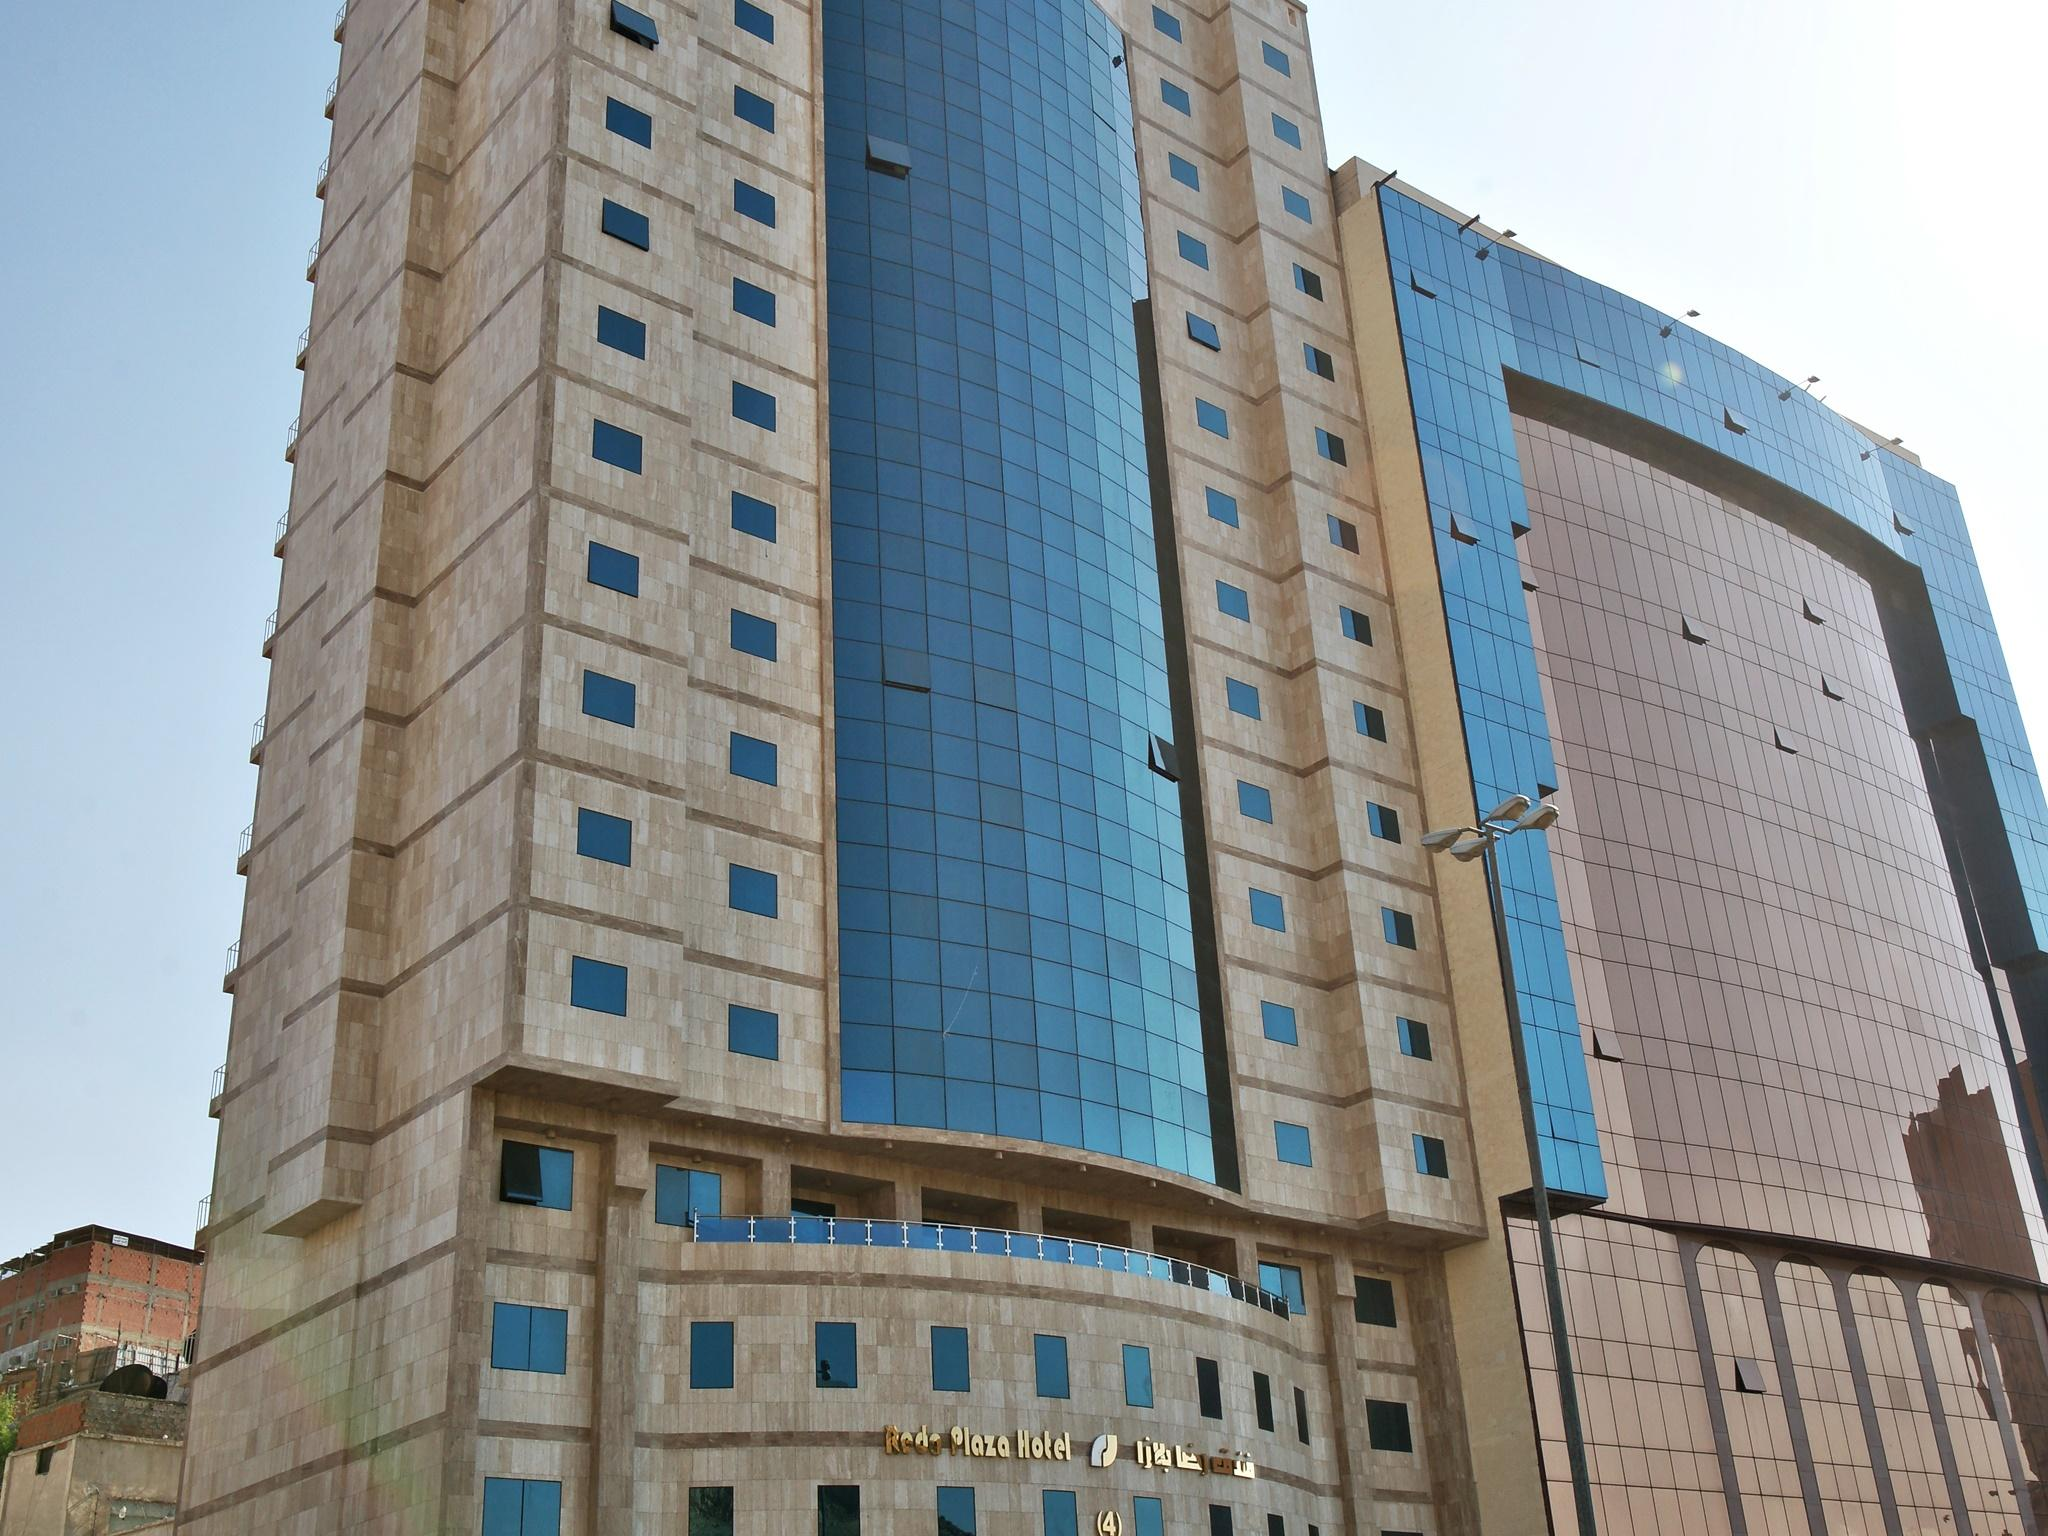 Reda Plaza Hotel - Hotels and Accommodation in Saudi Arabia, Middle East